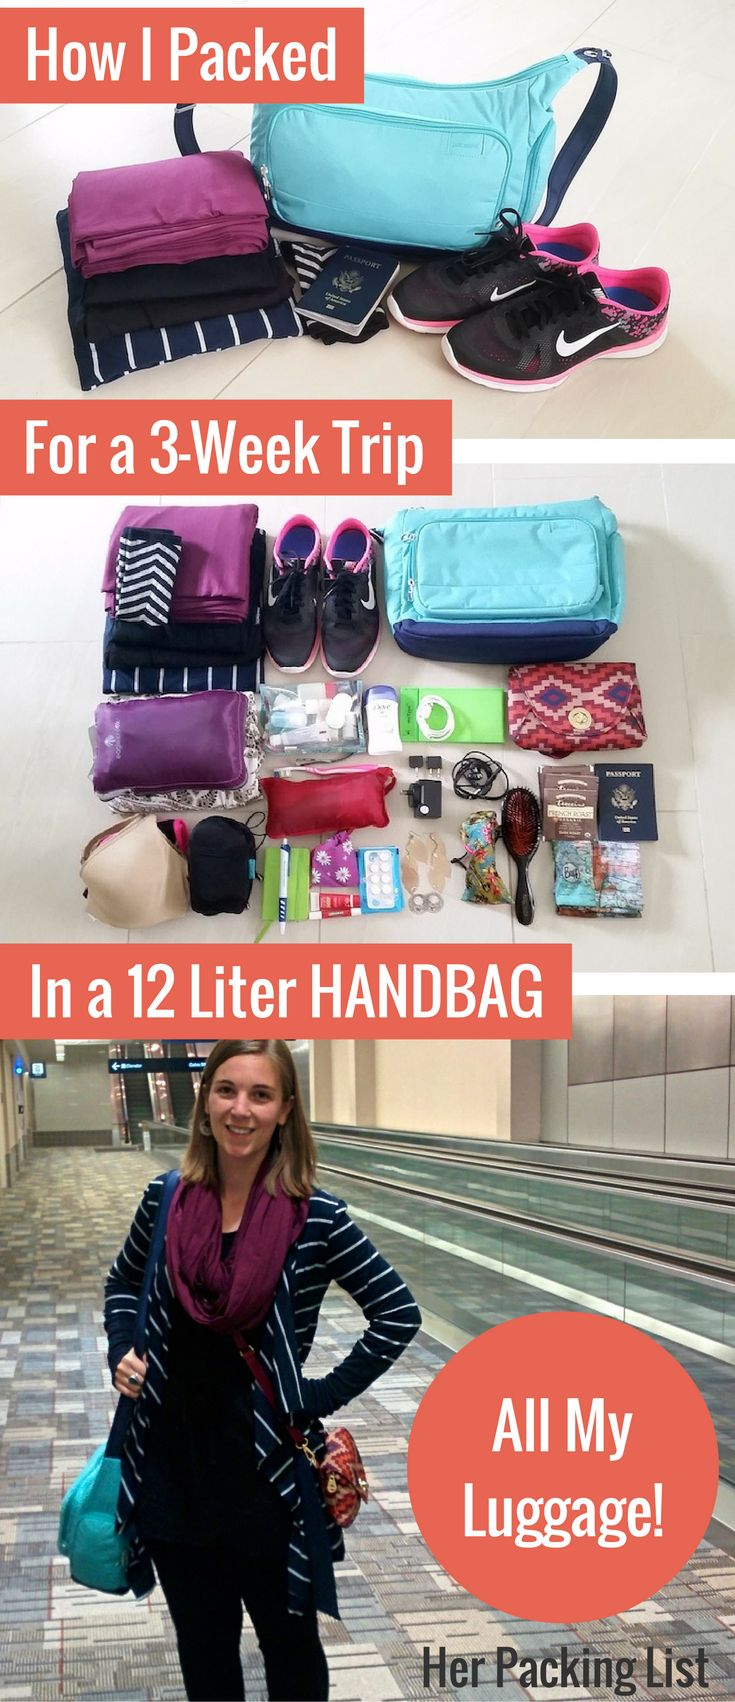 I traveled for over 3 weeks with the contents of a well-packed 12L handbag and a well-planned ultralight packing list. If you dream of minimalist travel, this p